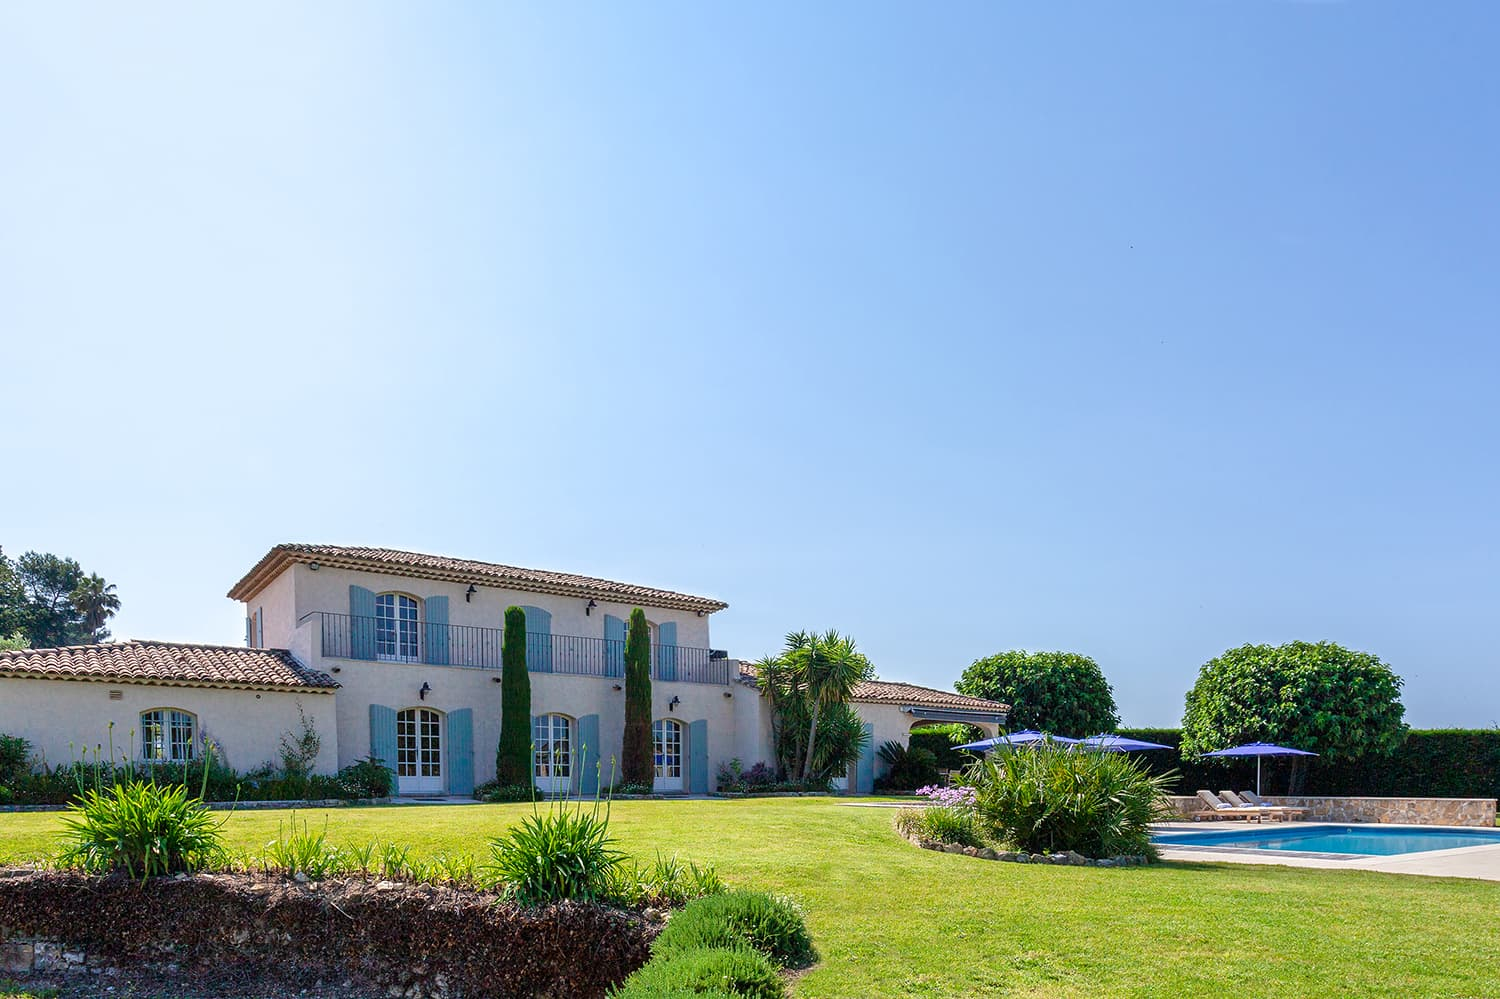 Holiday villa in Mouans-Sartoux, Provence-Alpes-Côte d'Azur, with heated private pool